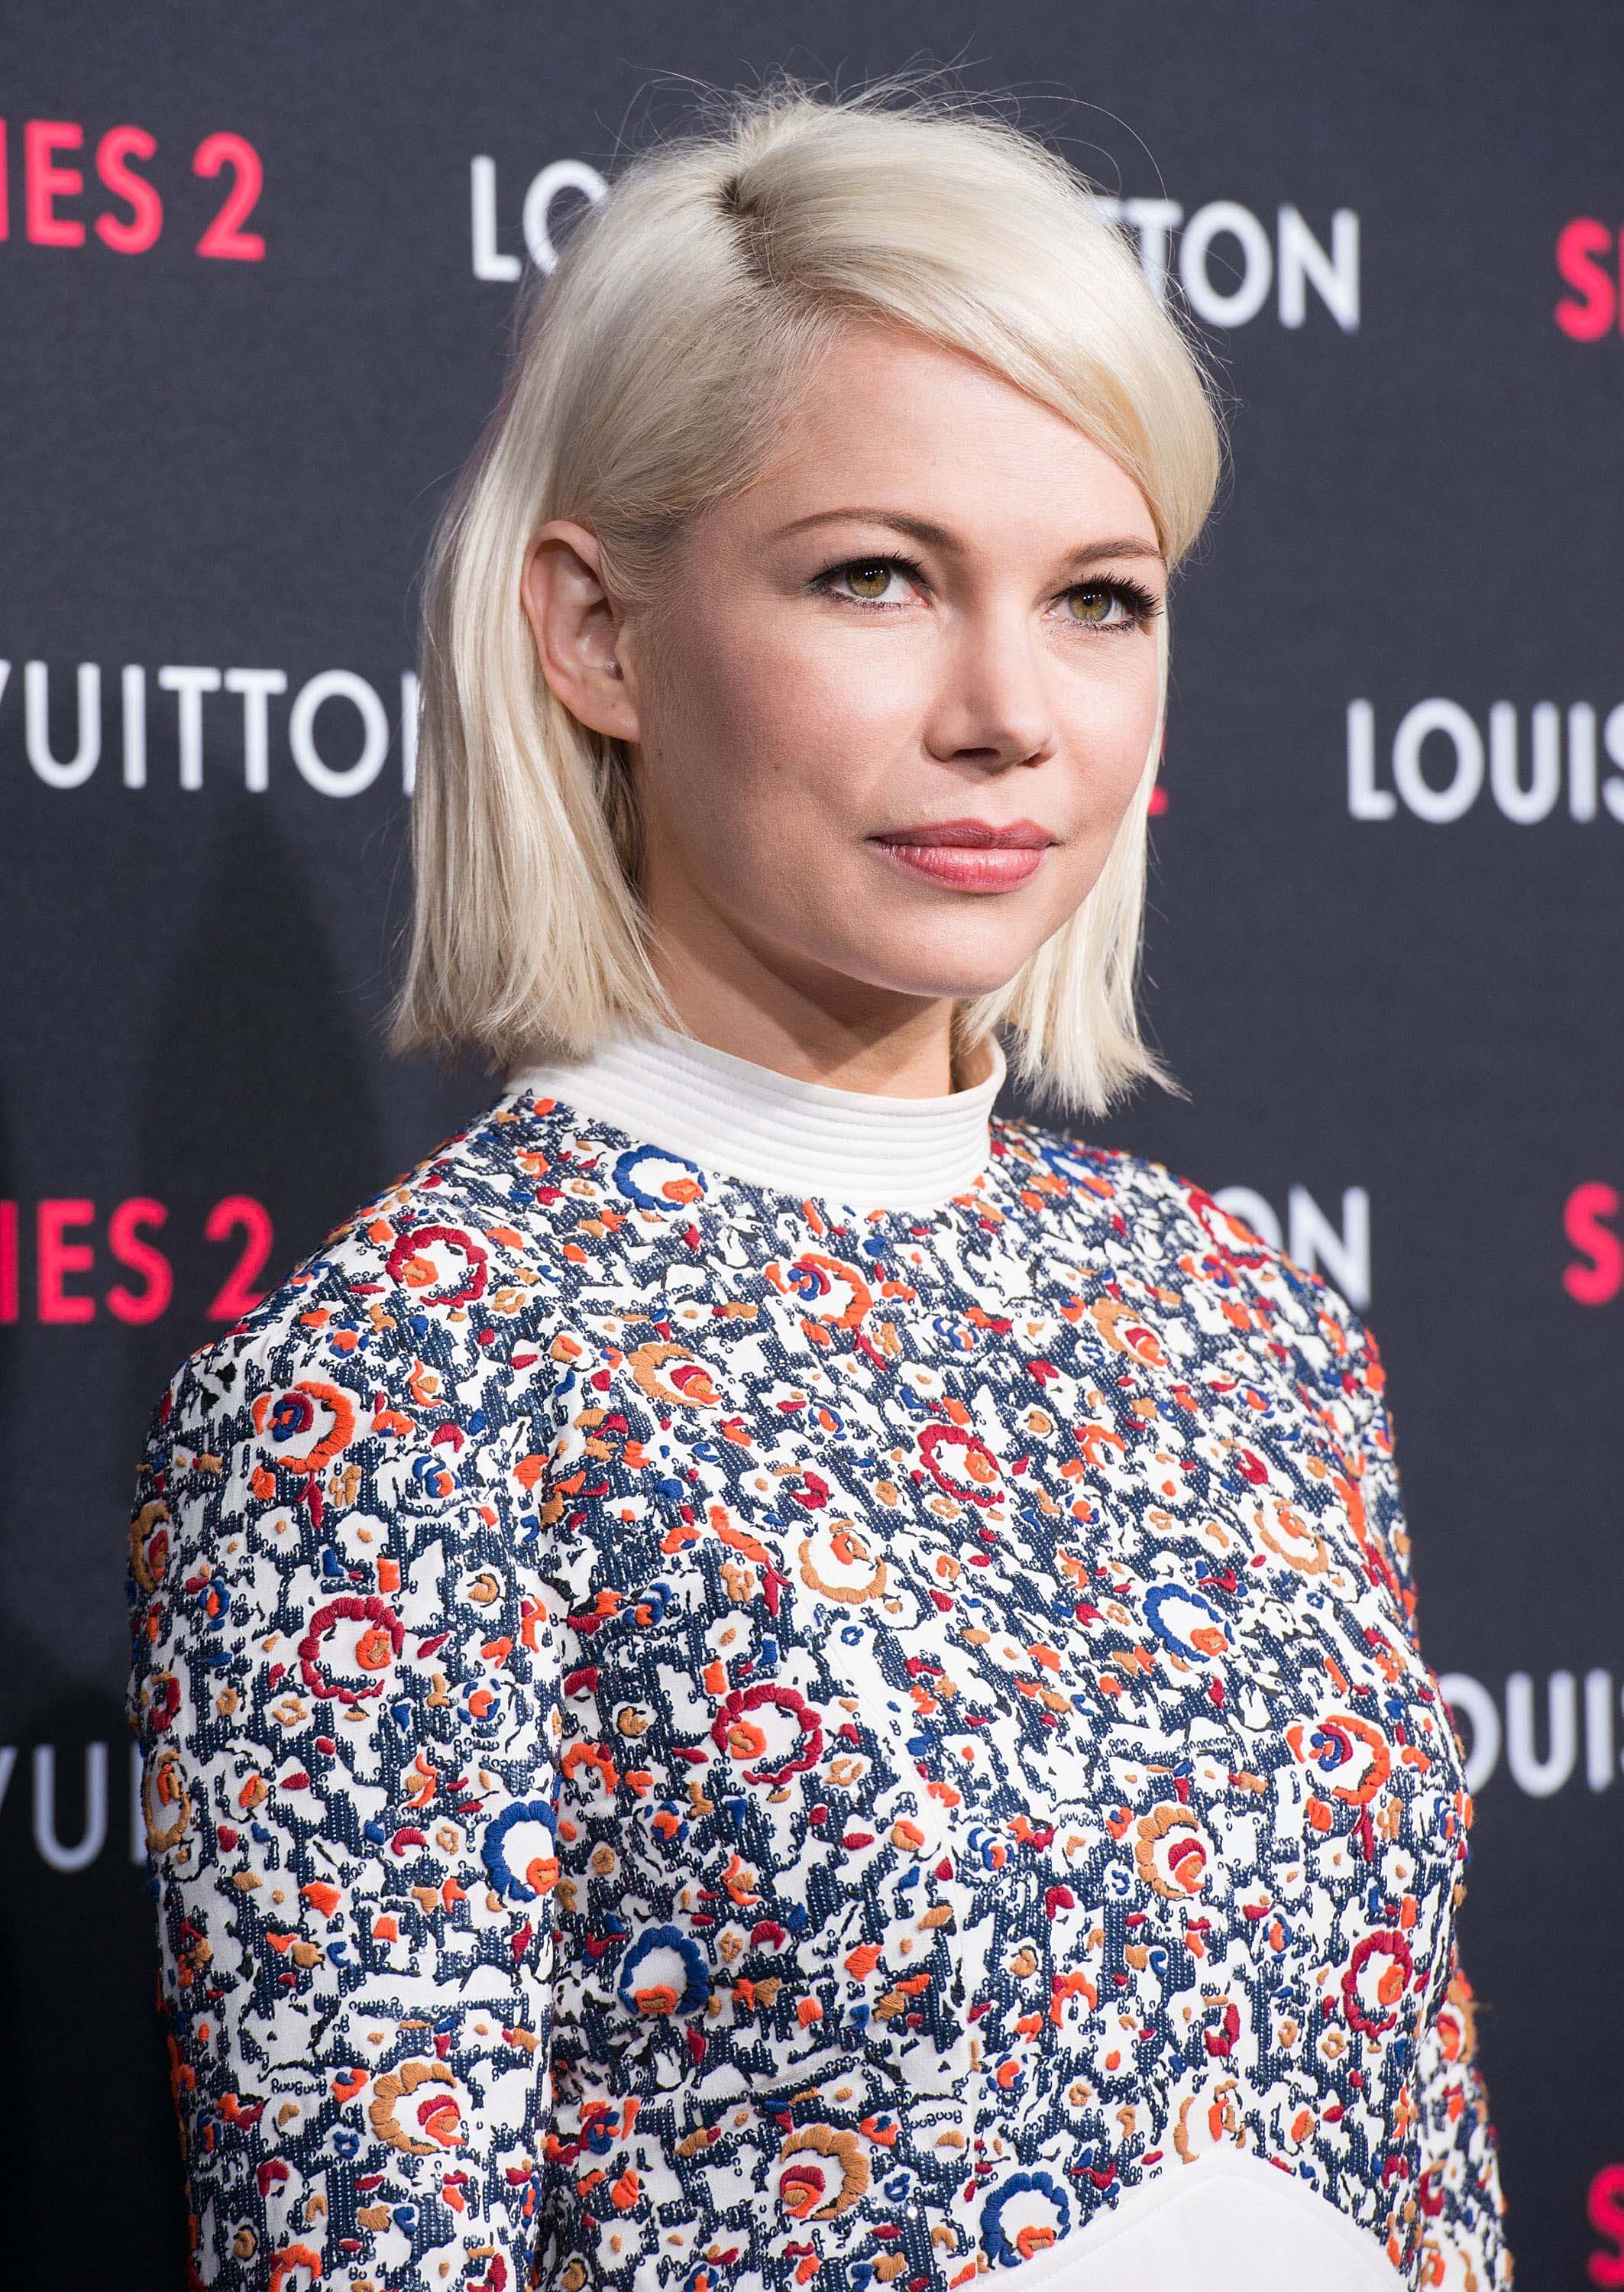 icy-blonde-hair-michelle-williams